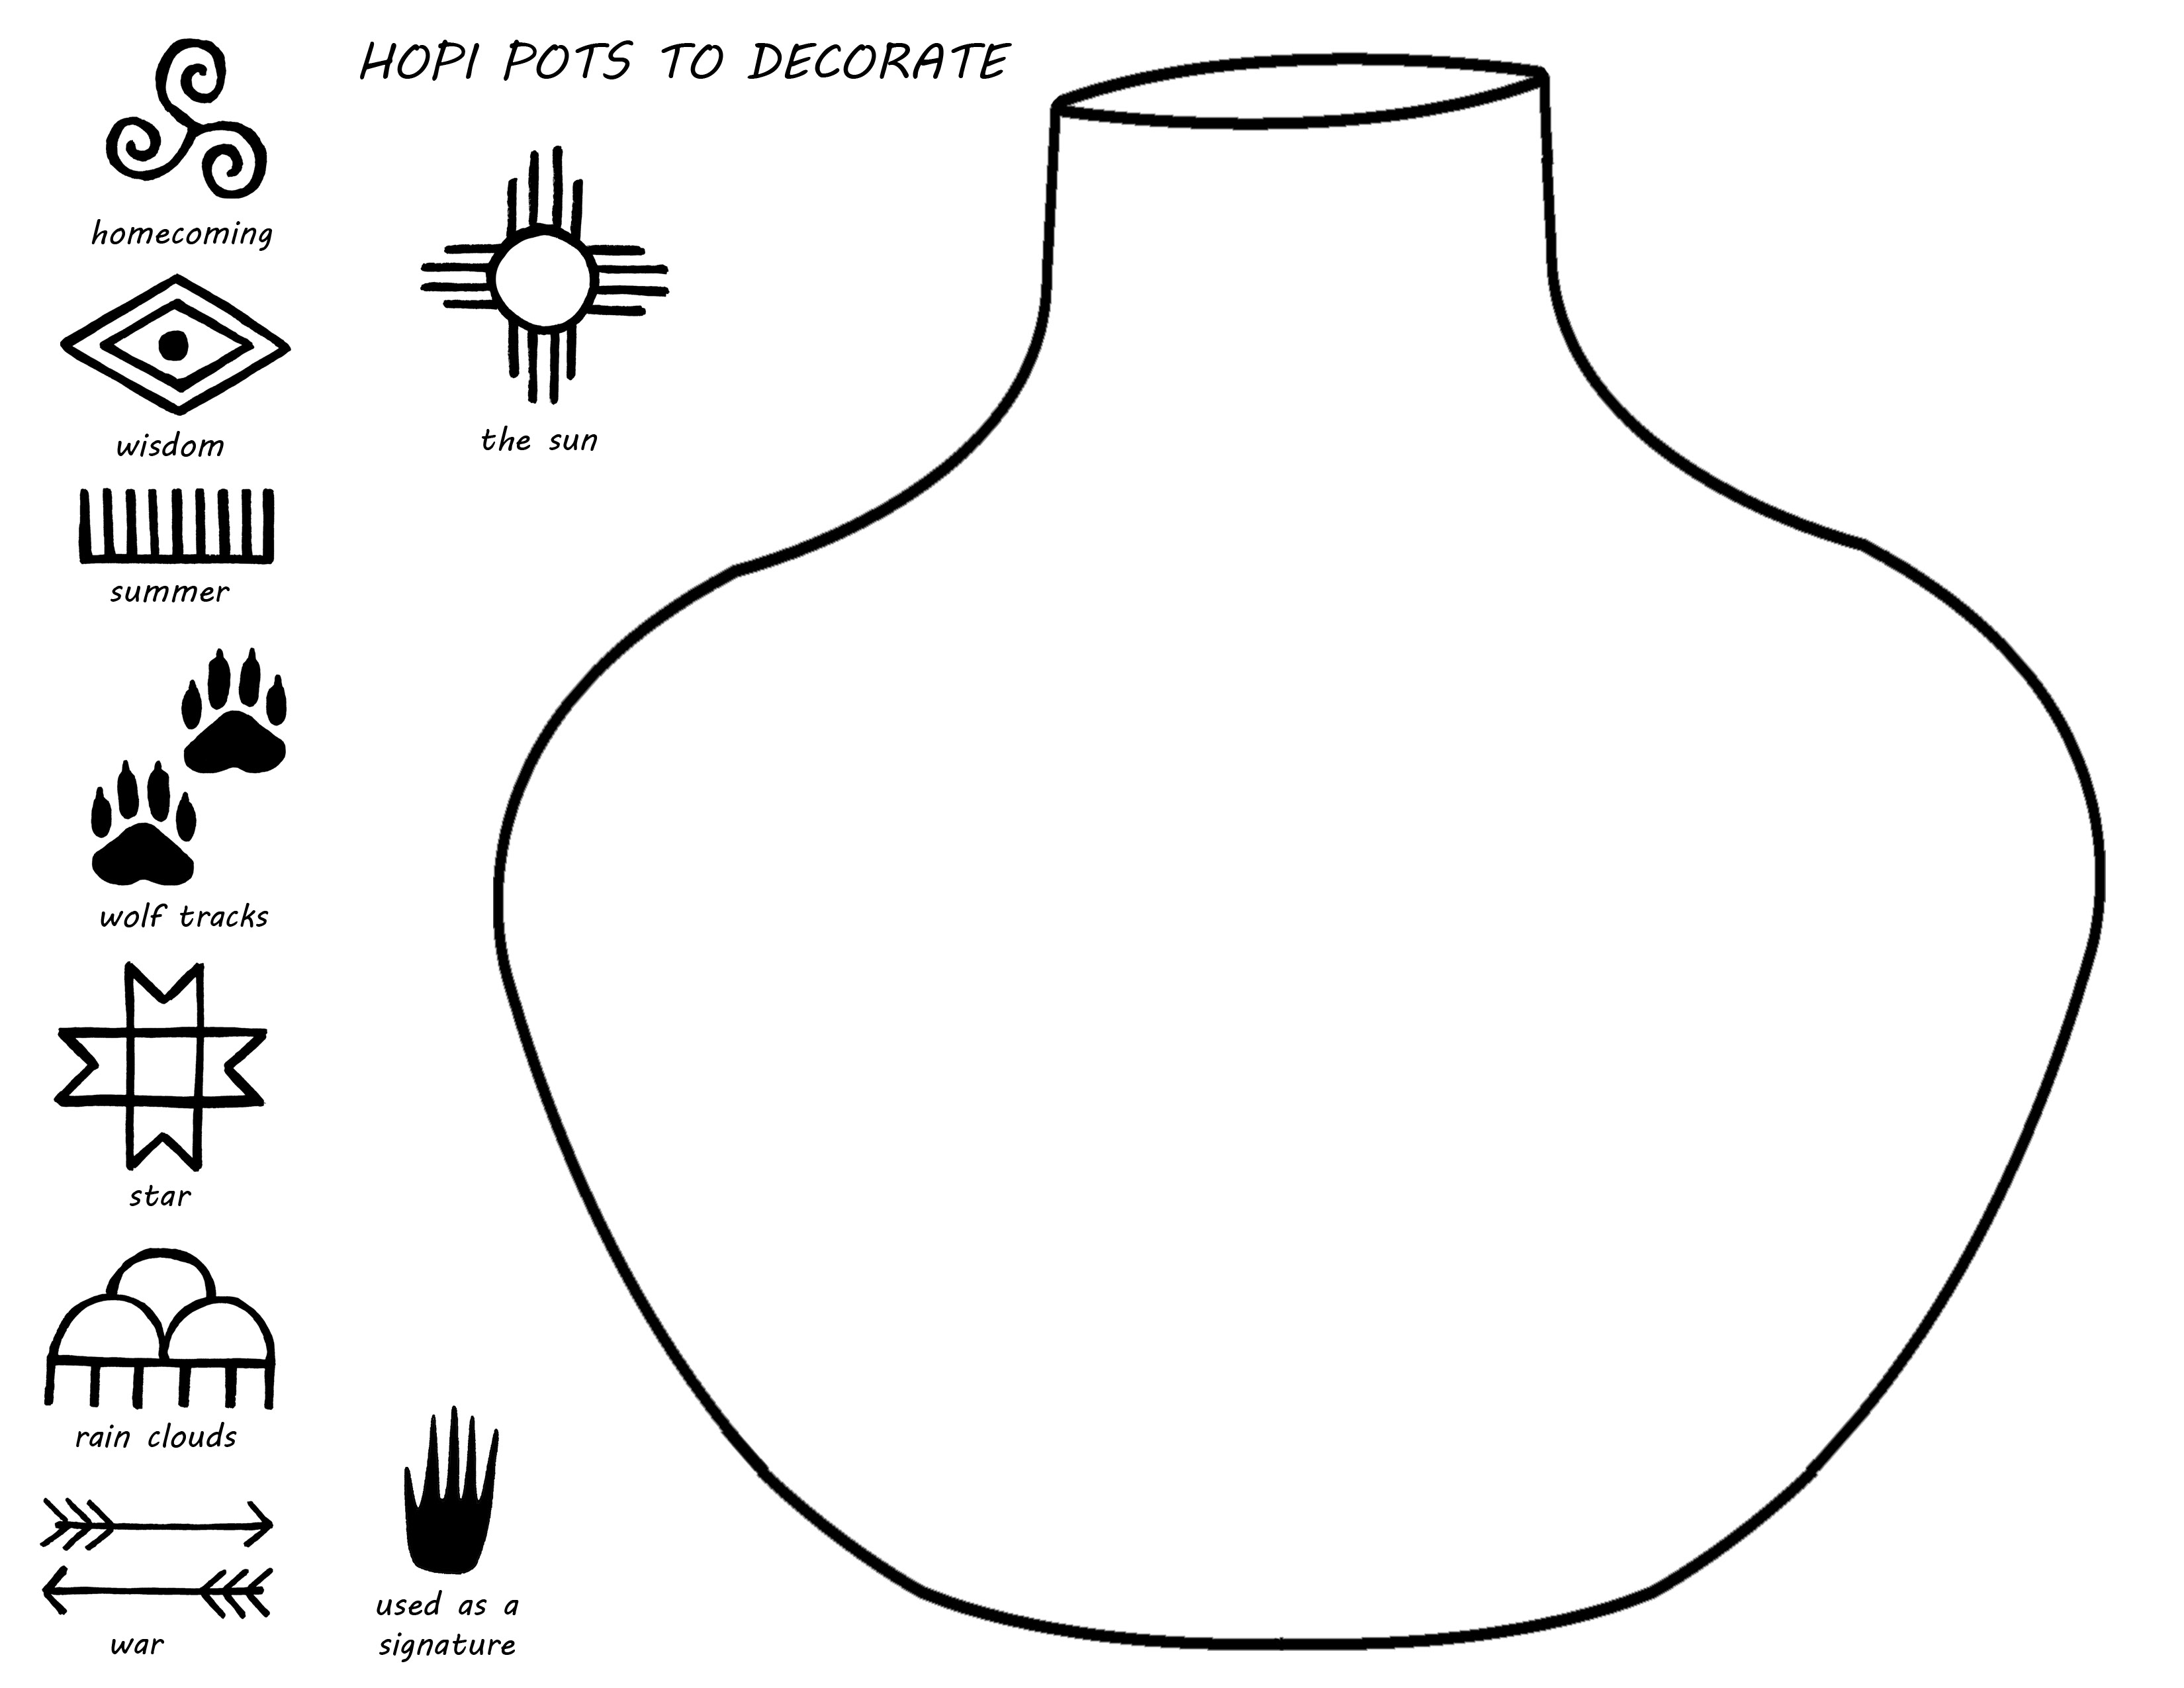 Hopi pottery symbols gallery symbol and sign ideas coloring pages native american pottery coloring pages native american pottery photo16 buycottarizona buycottarizona